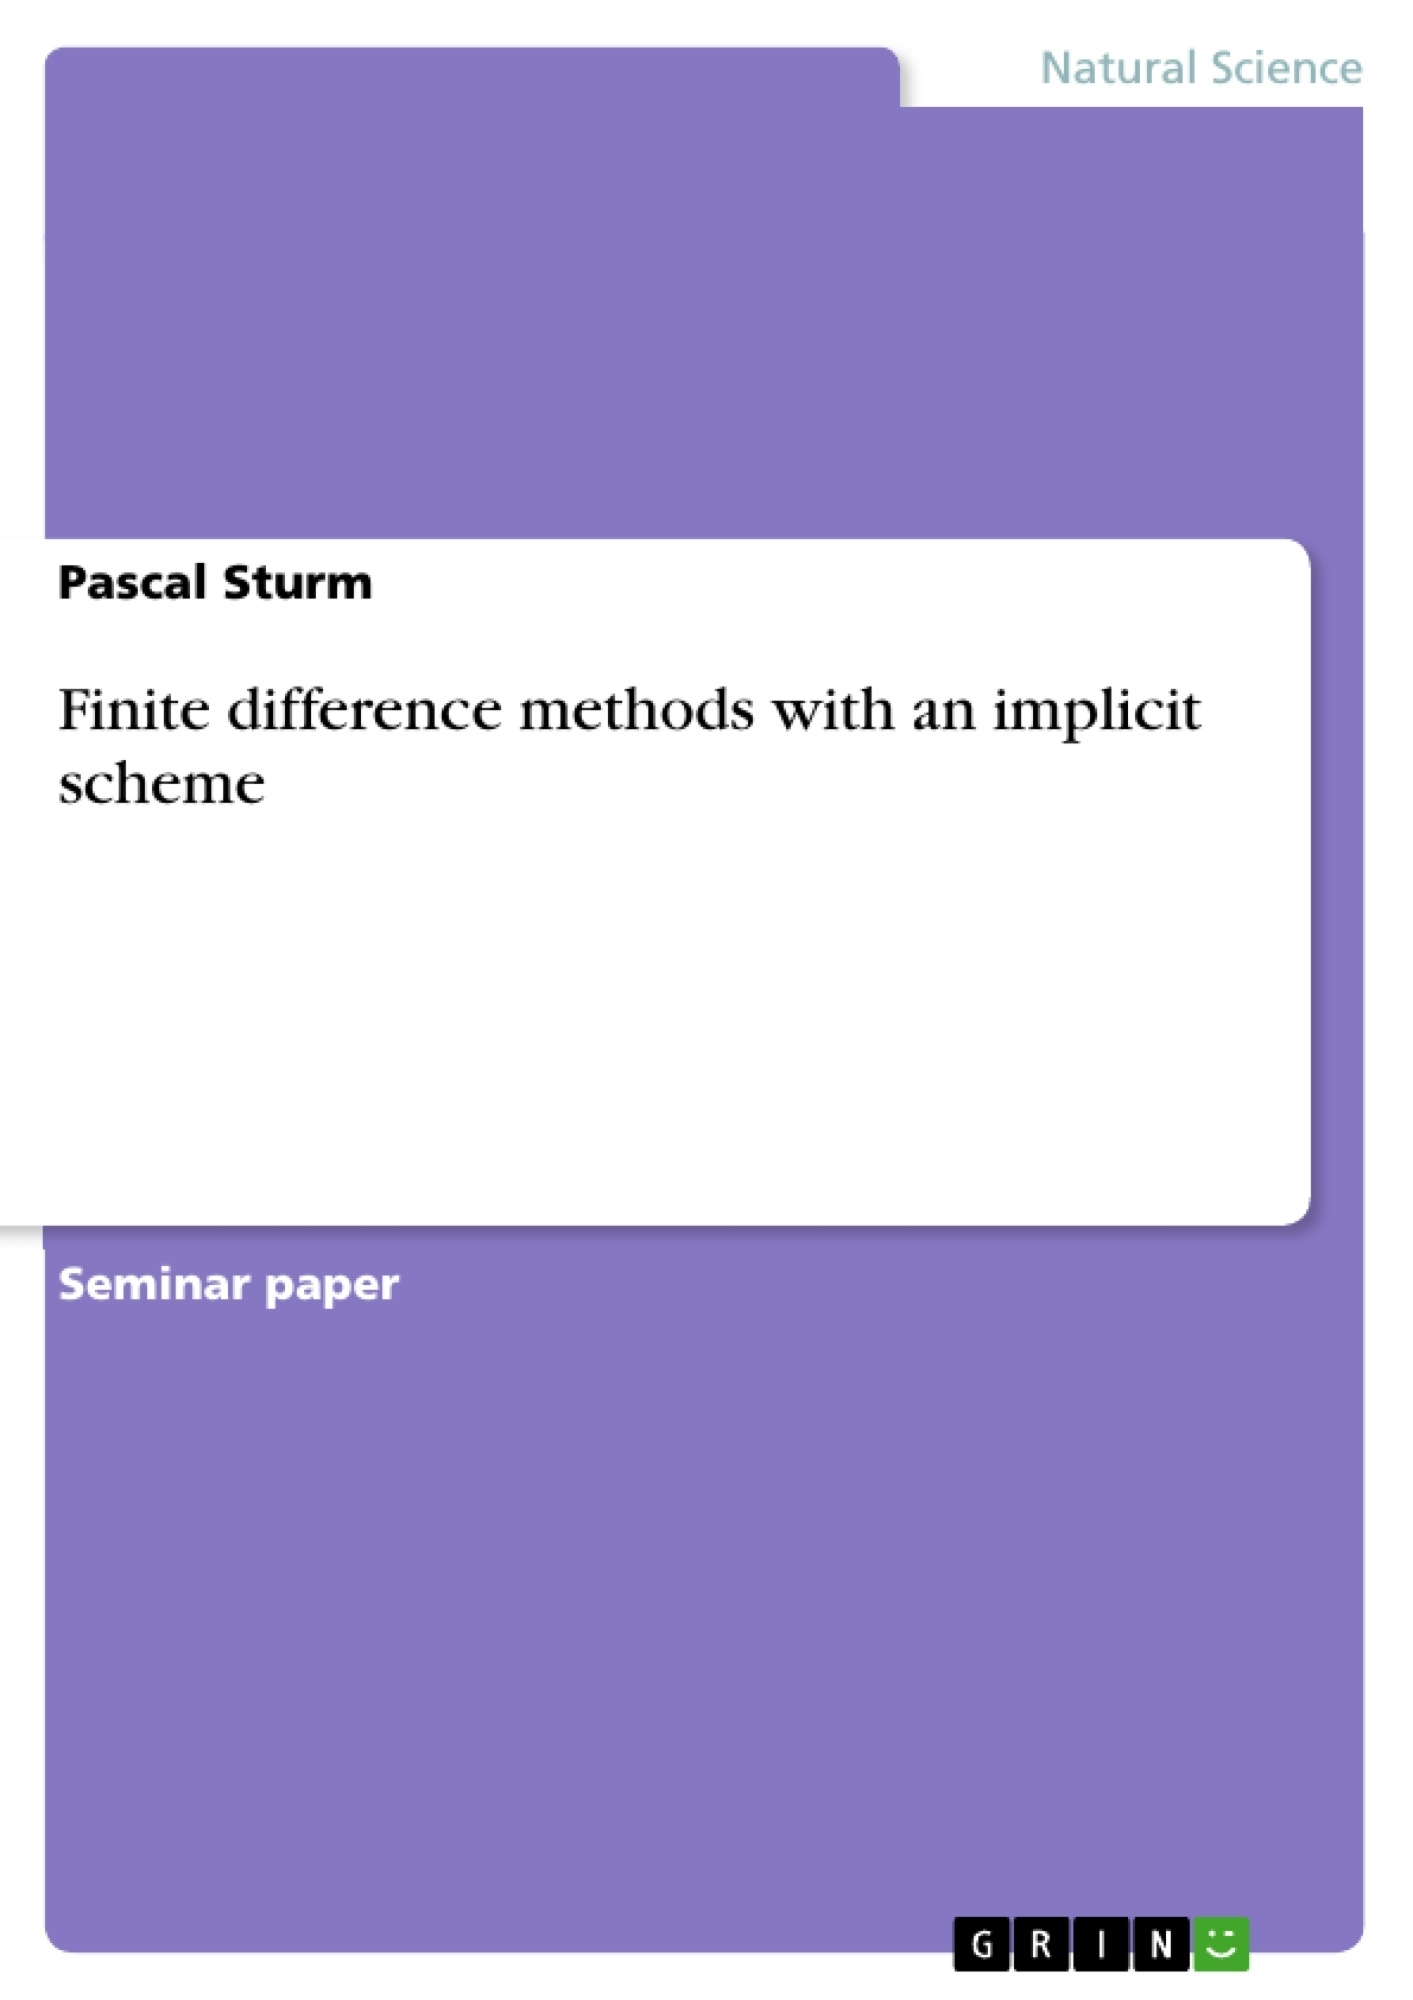 Title: Finite difference methods with an implicit scheme